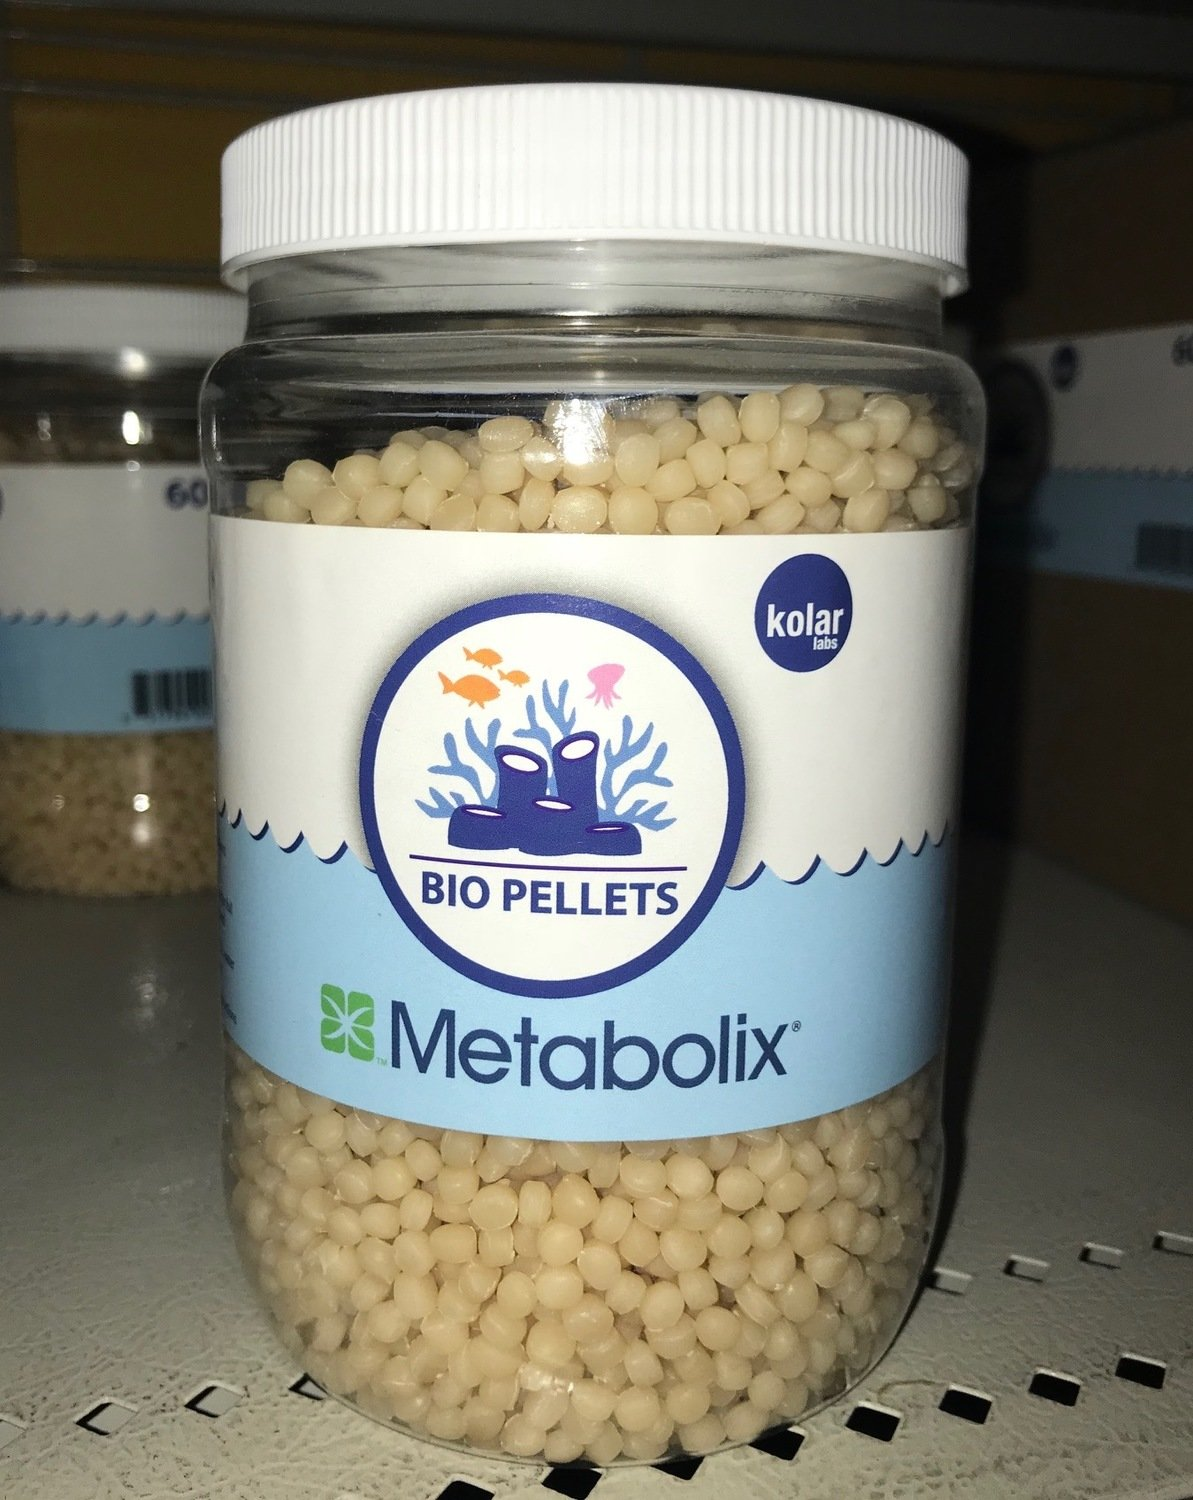 METABOLIX DP9002 BIOPELLETS 600grams